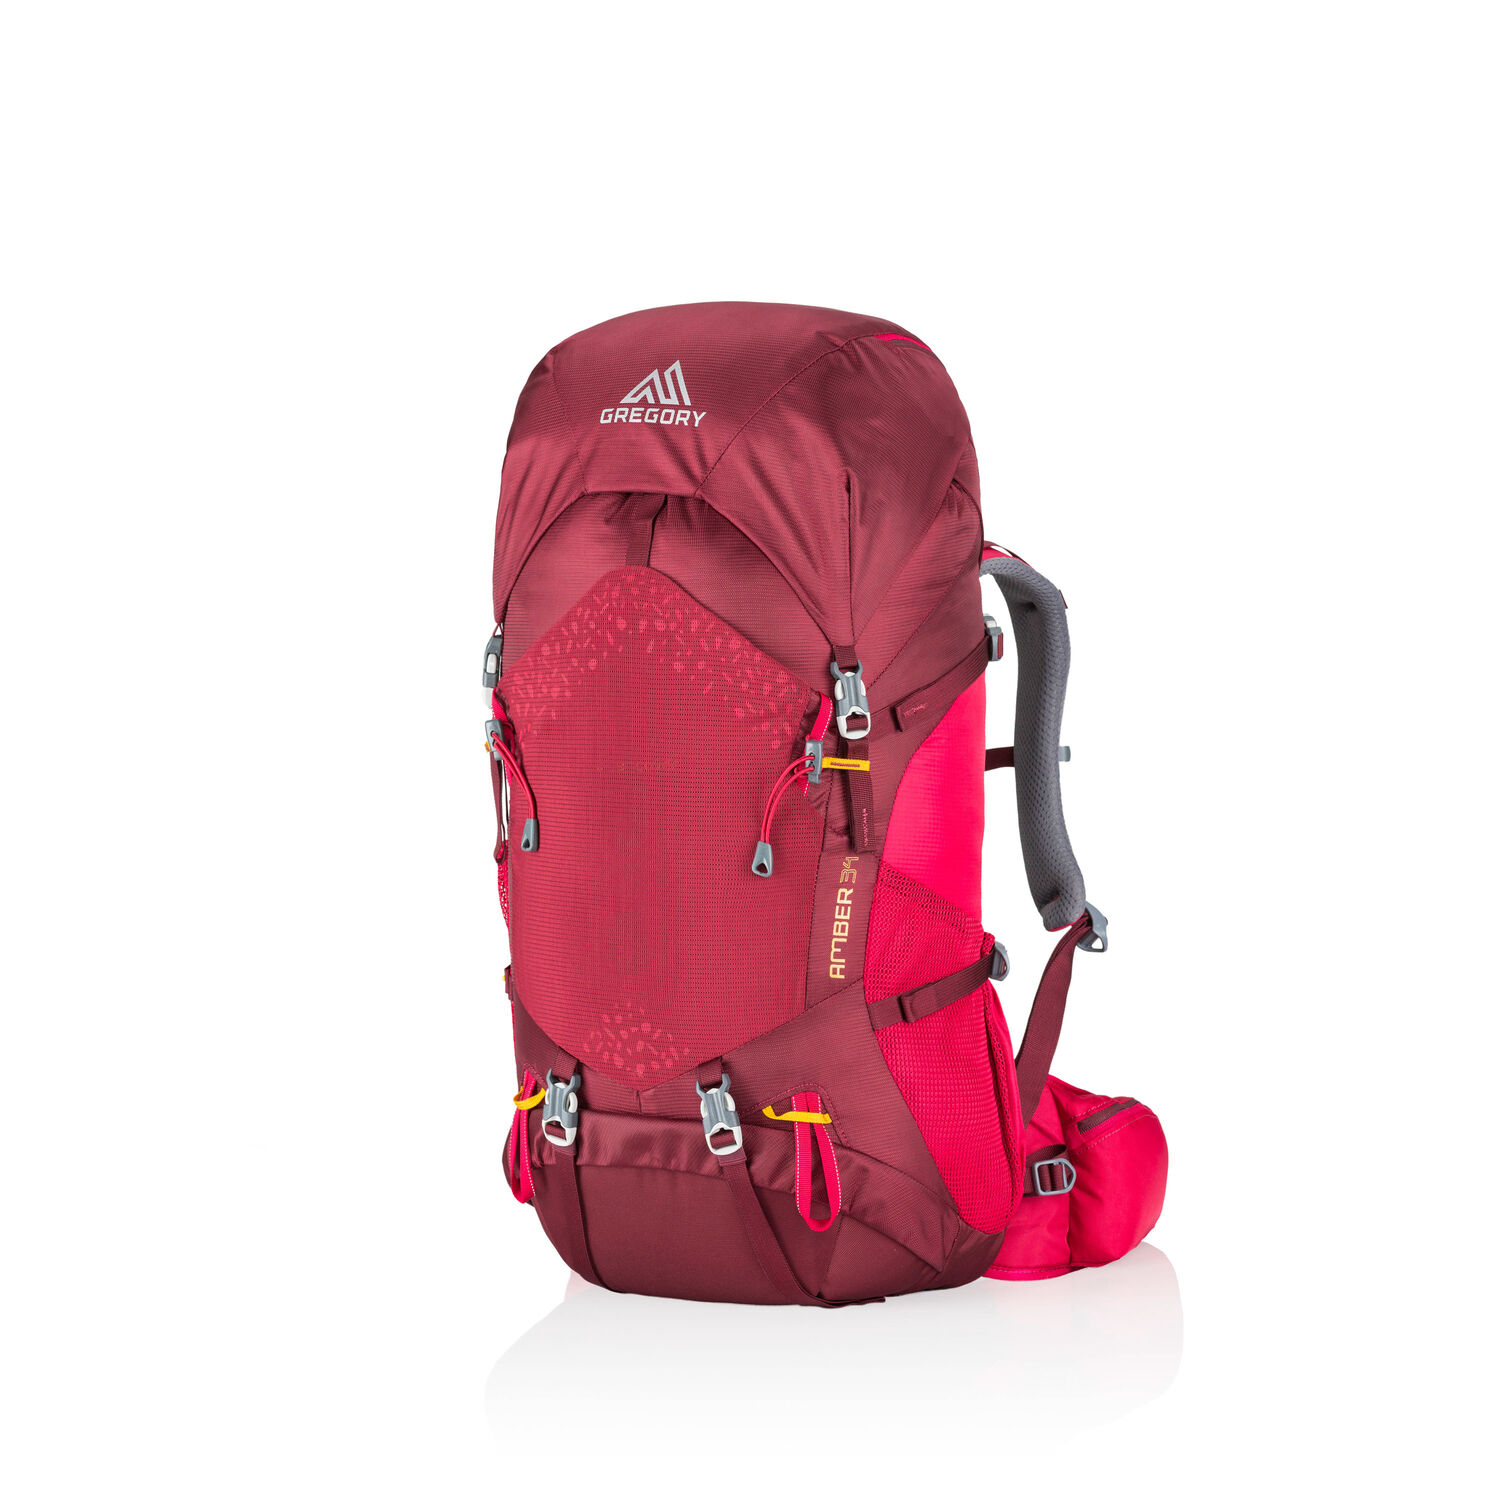 Amber 34 in the color Chili Pepper Red.